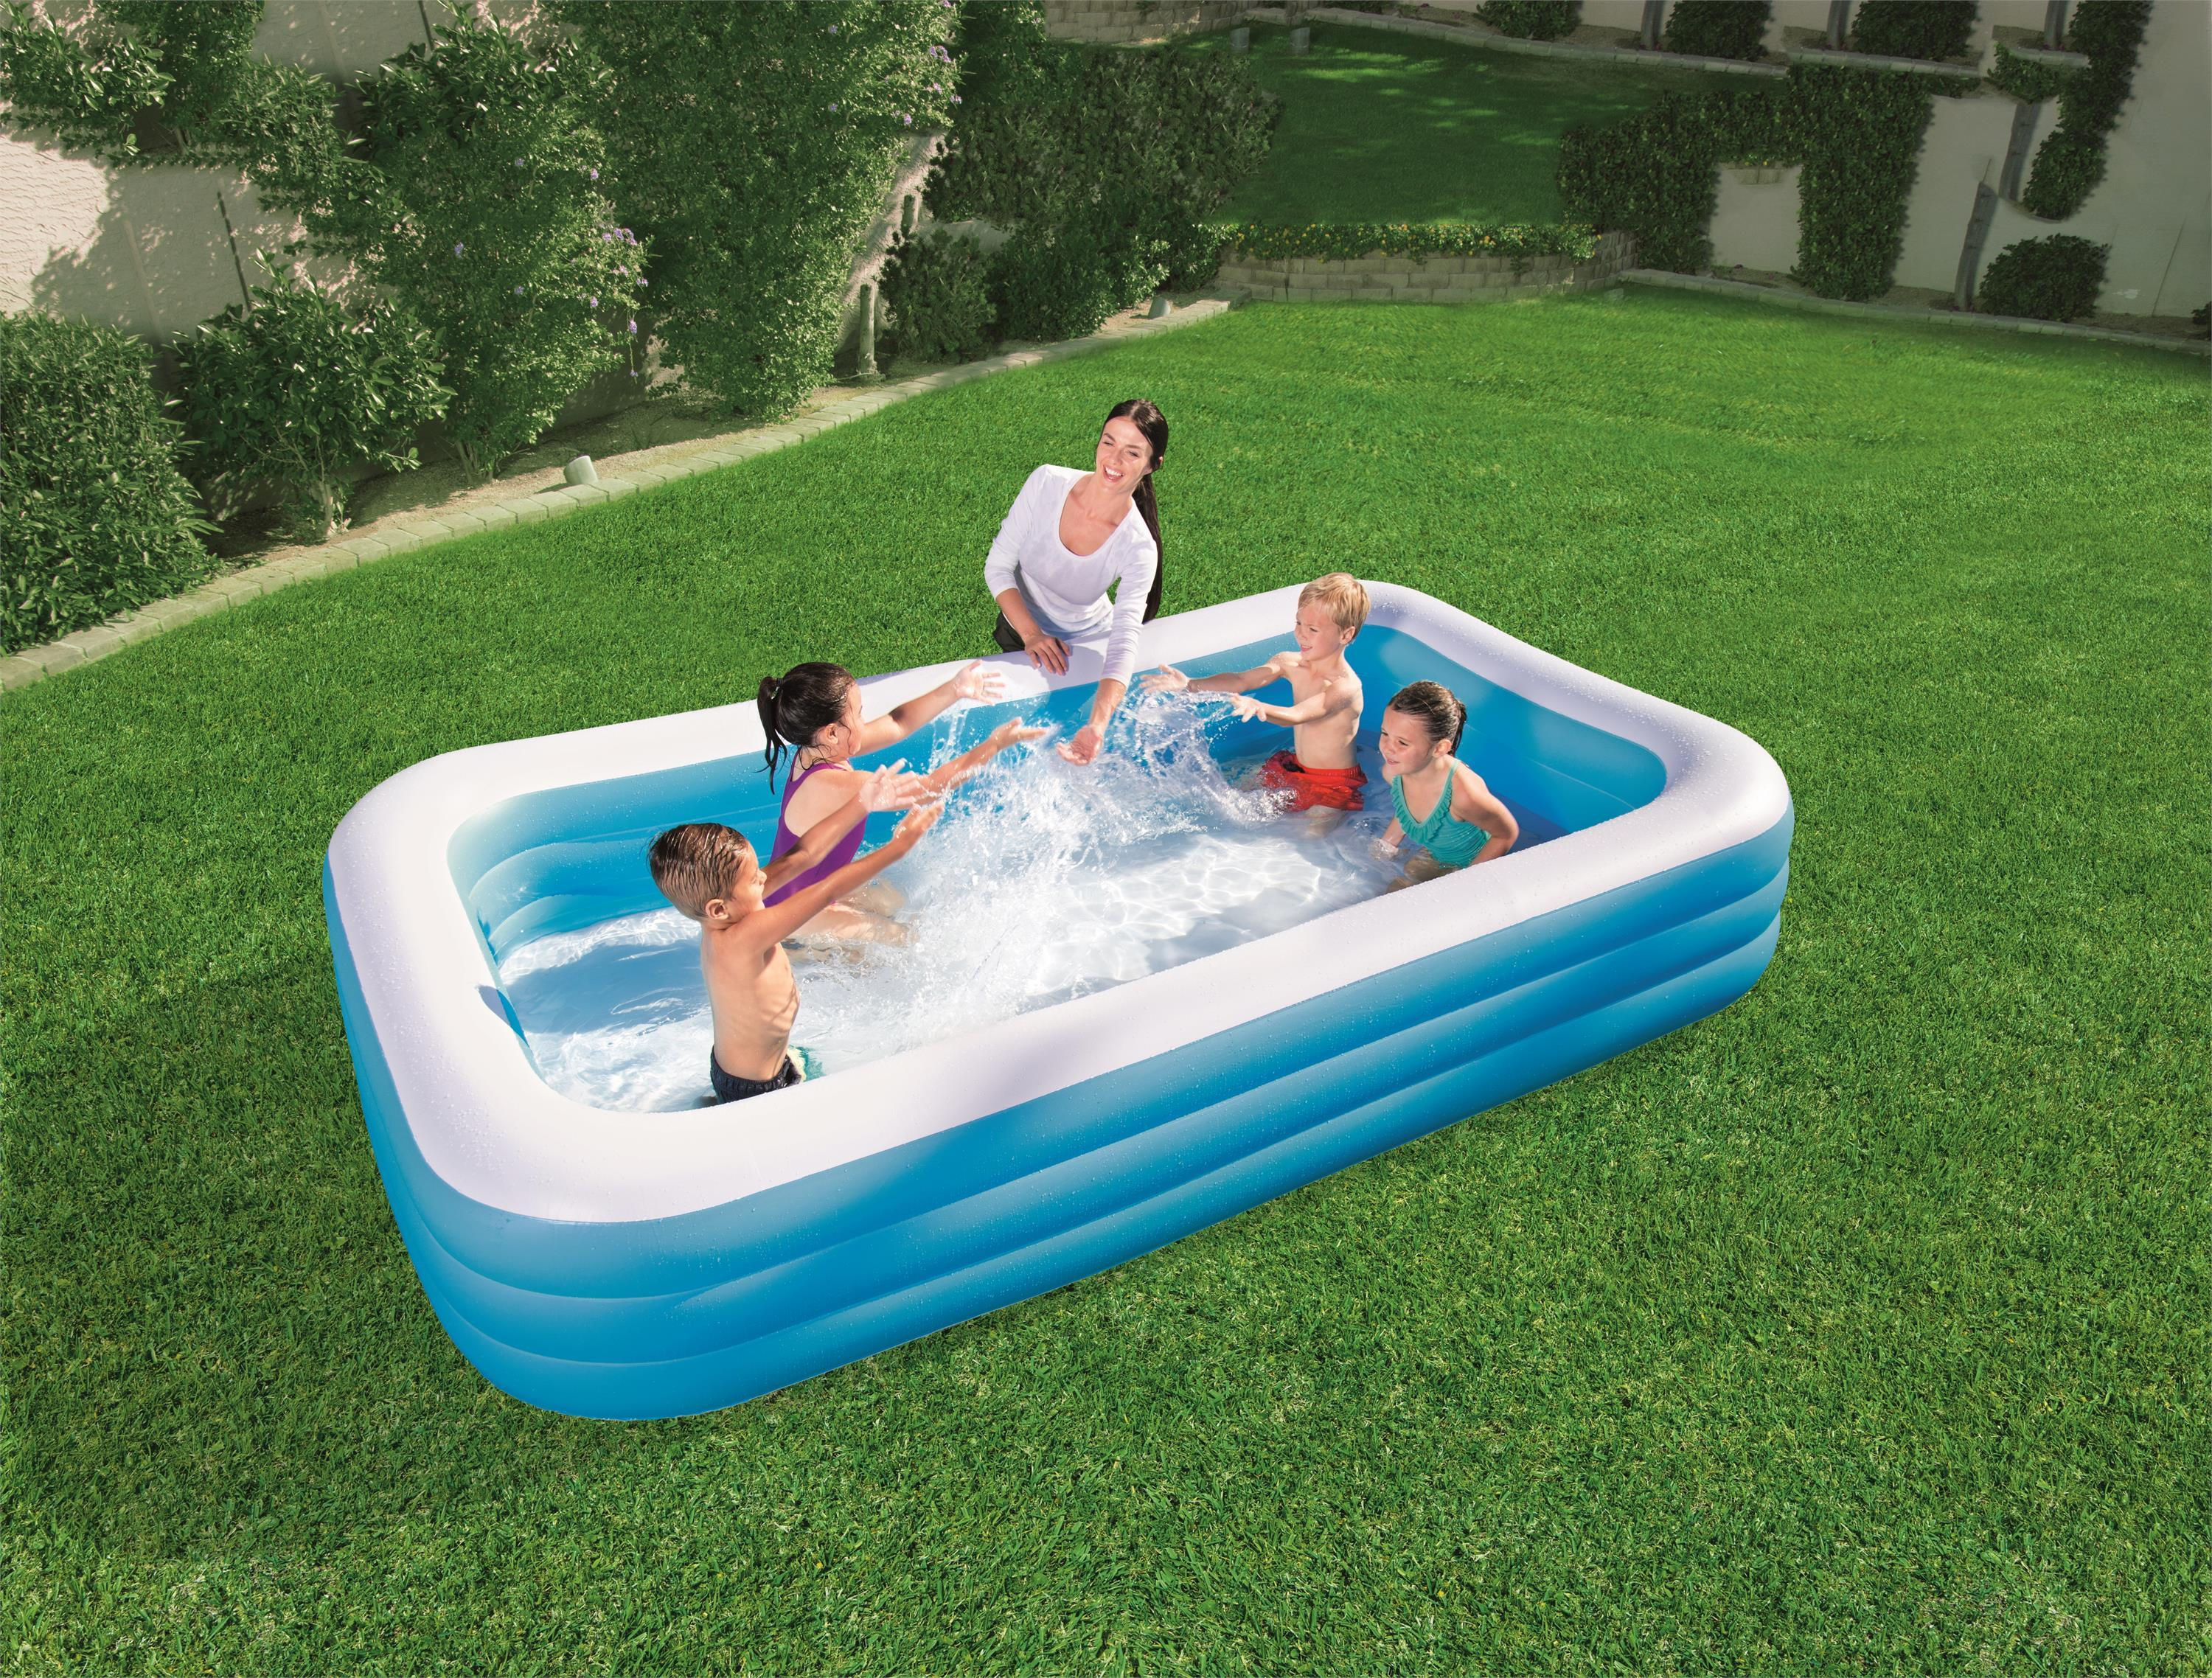 Three-ring rectangular pool